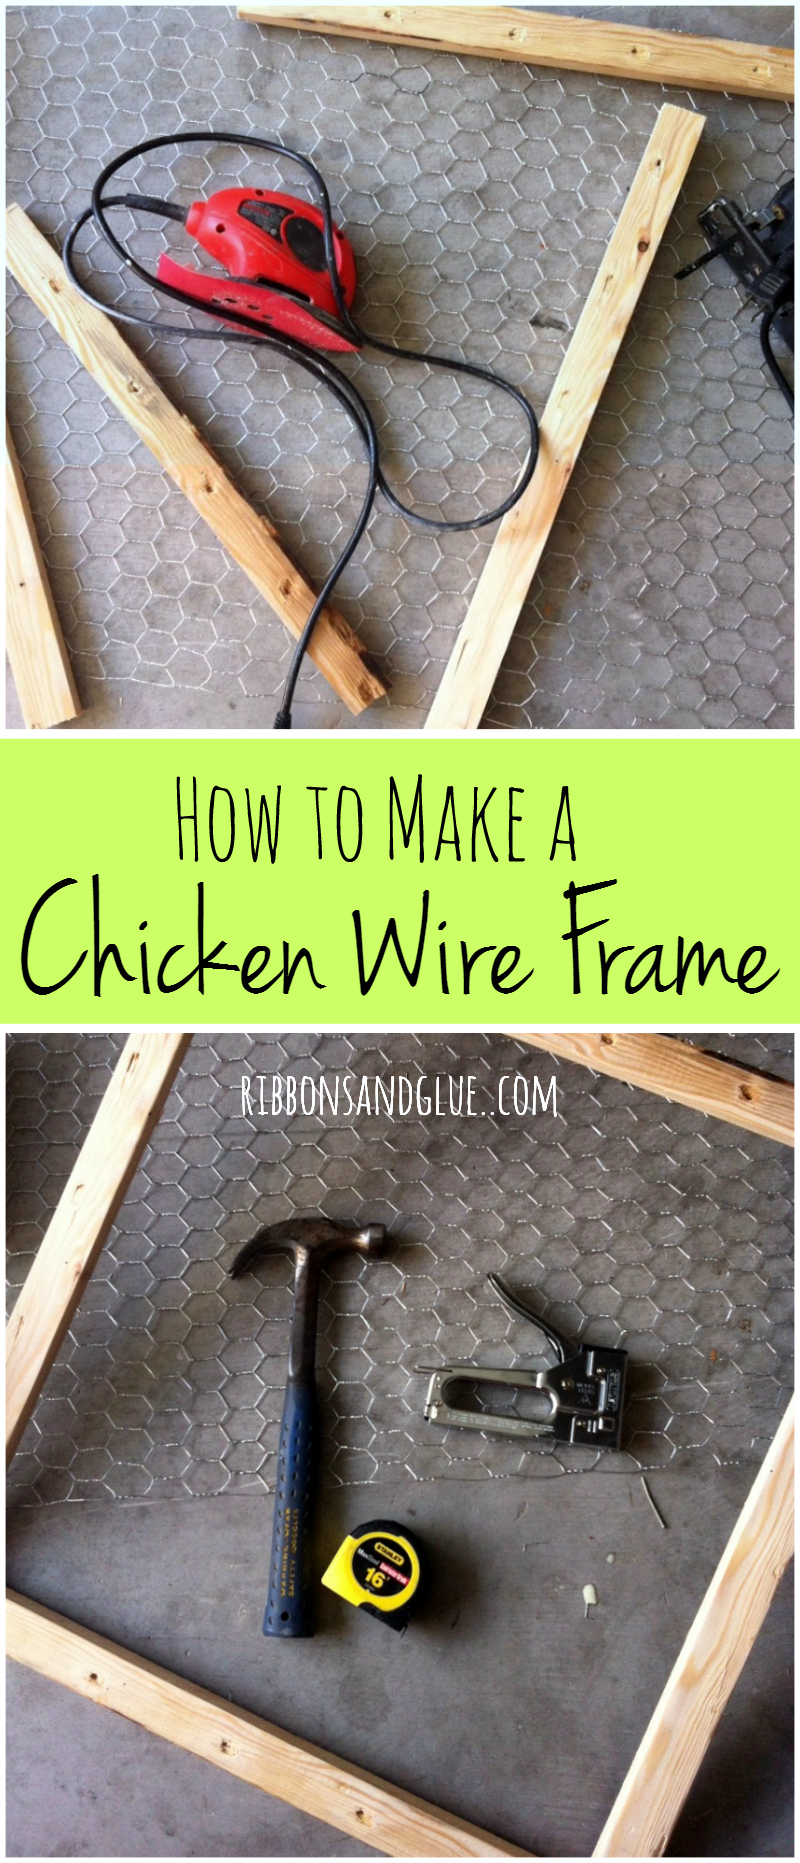 How to make a chicken wire frame with furring strips, chicken wire and a staple gun. Easy, rustic, DIY farmhouse project.